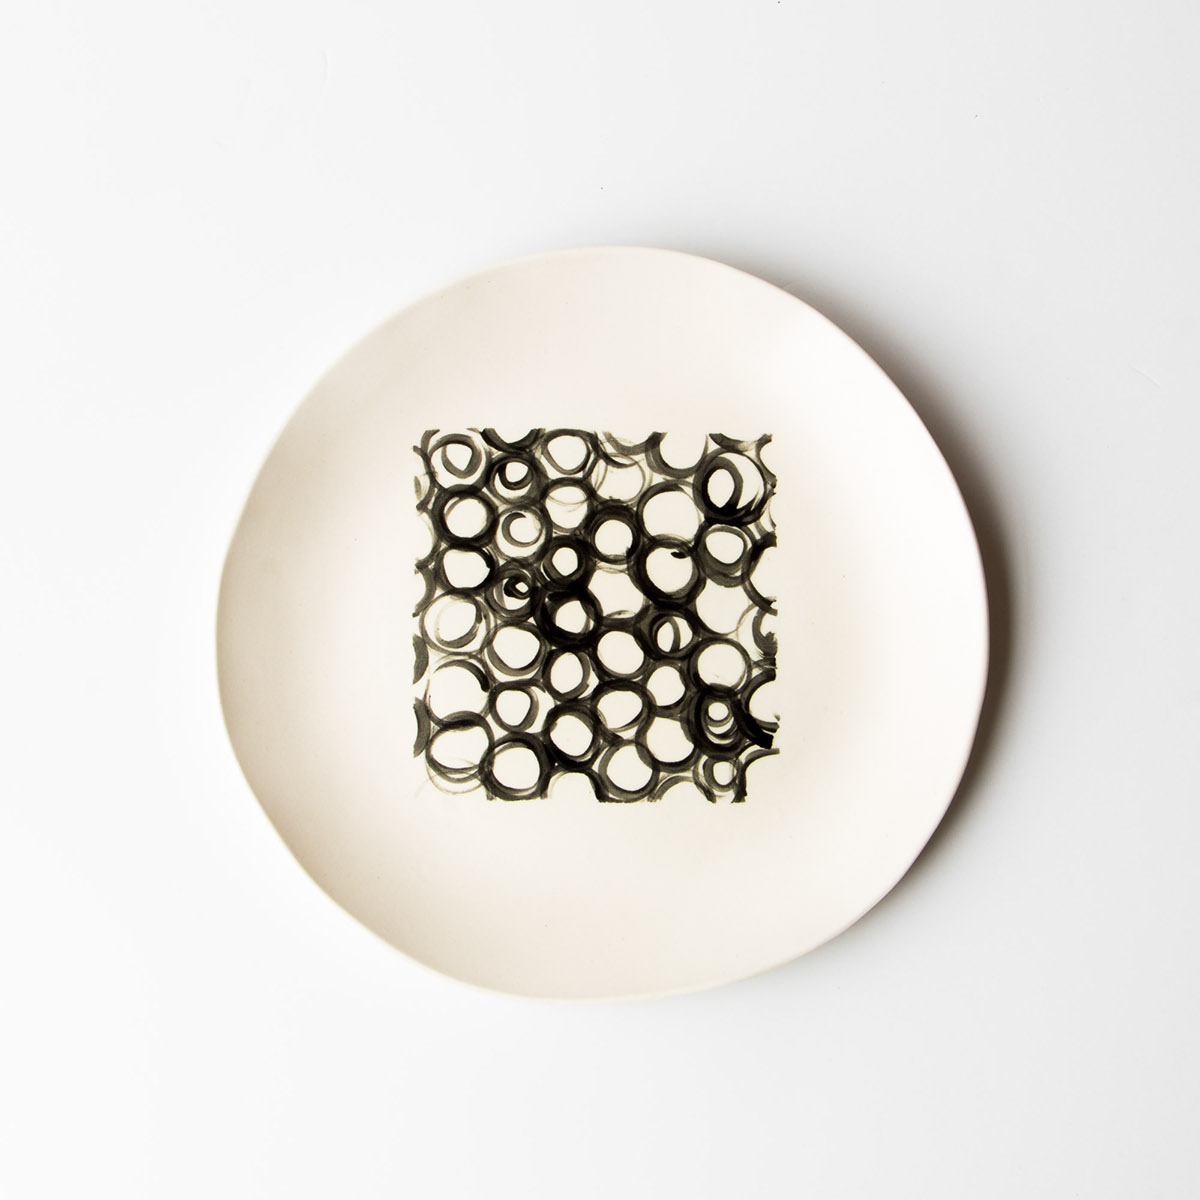 Use them for service during dinner with friends or outright as decorative pieces. CLICK HERE TO SHOP THESE Large Hand Painted Ceramic Plates  sc 1 st  Behance & Rachel Grenon - Large Hand Painted Ceramic Plates on Behance